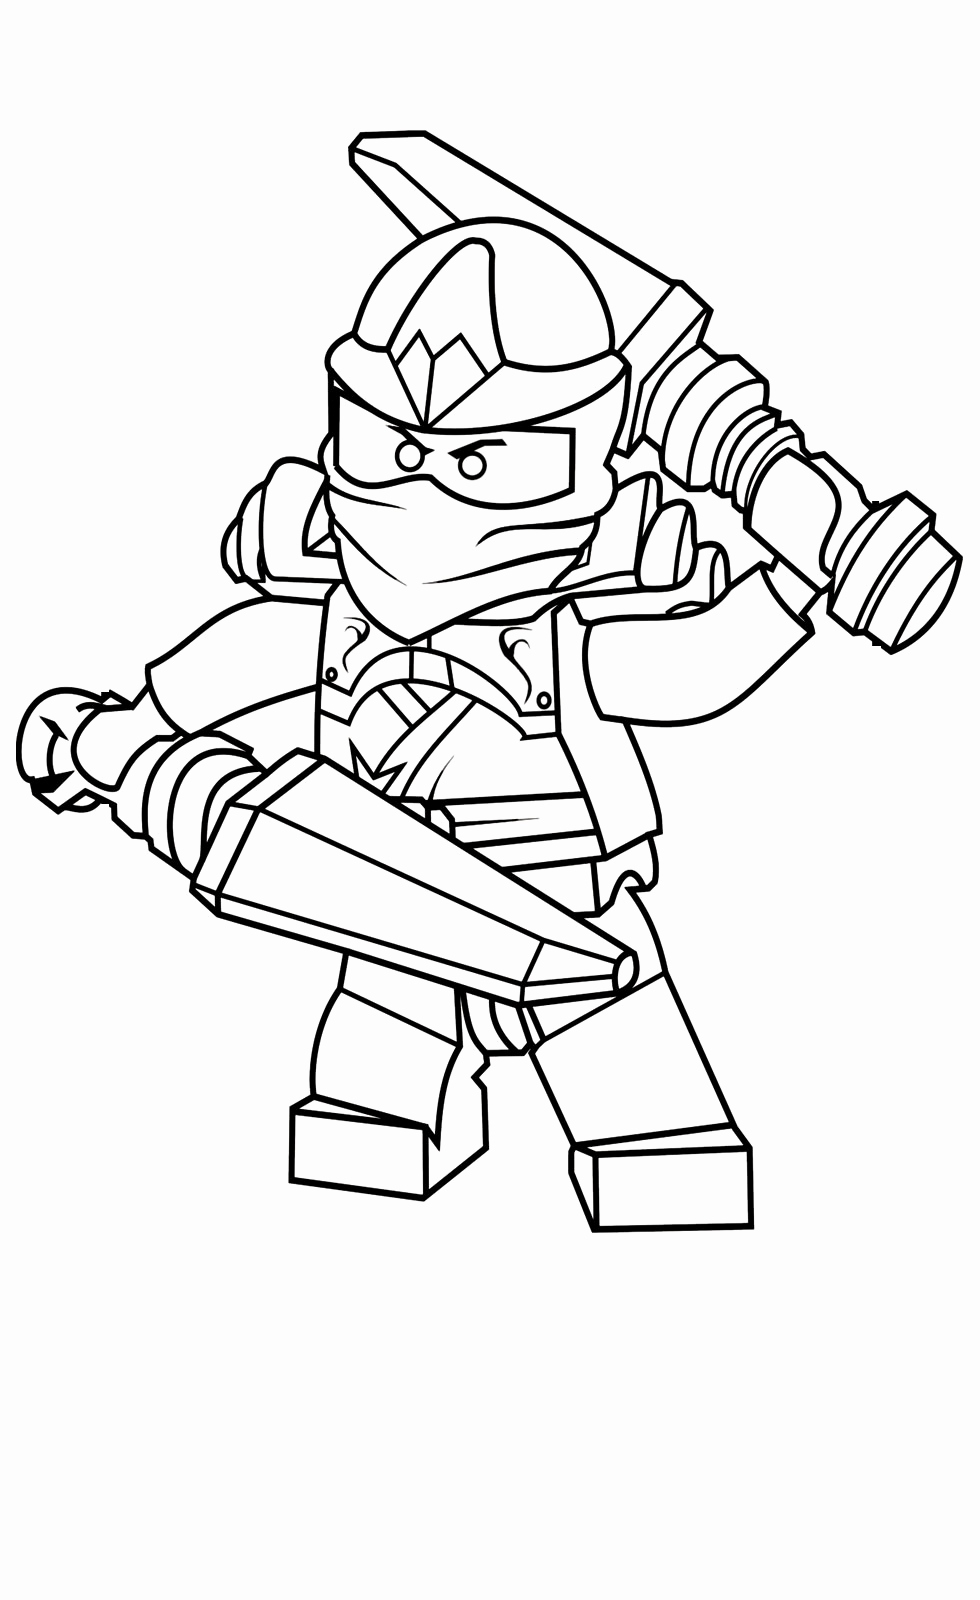 Lego Ninjago Rebooted Coloring Pages At Getdrawings Free Download